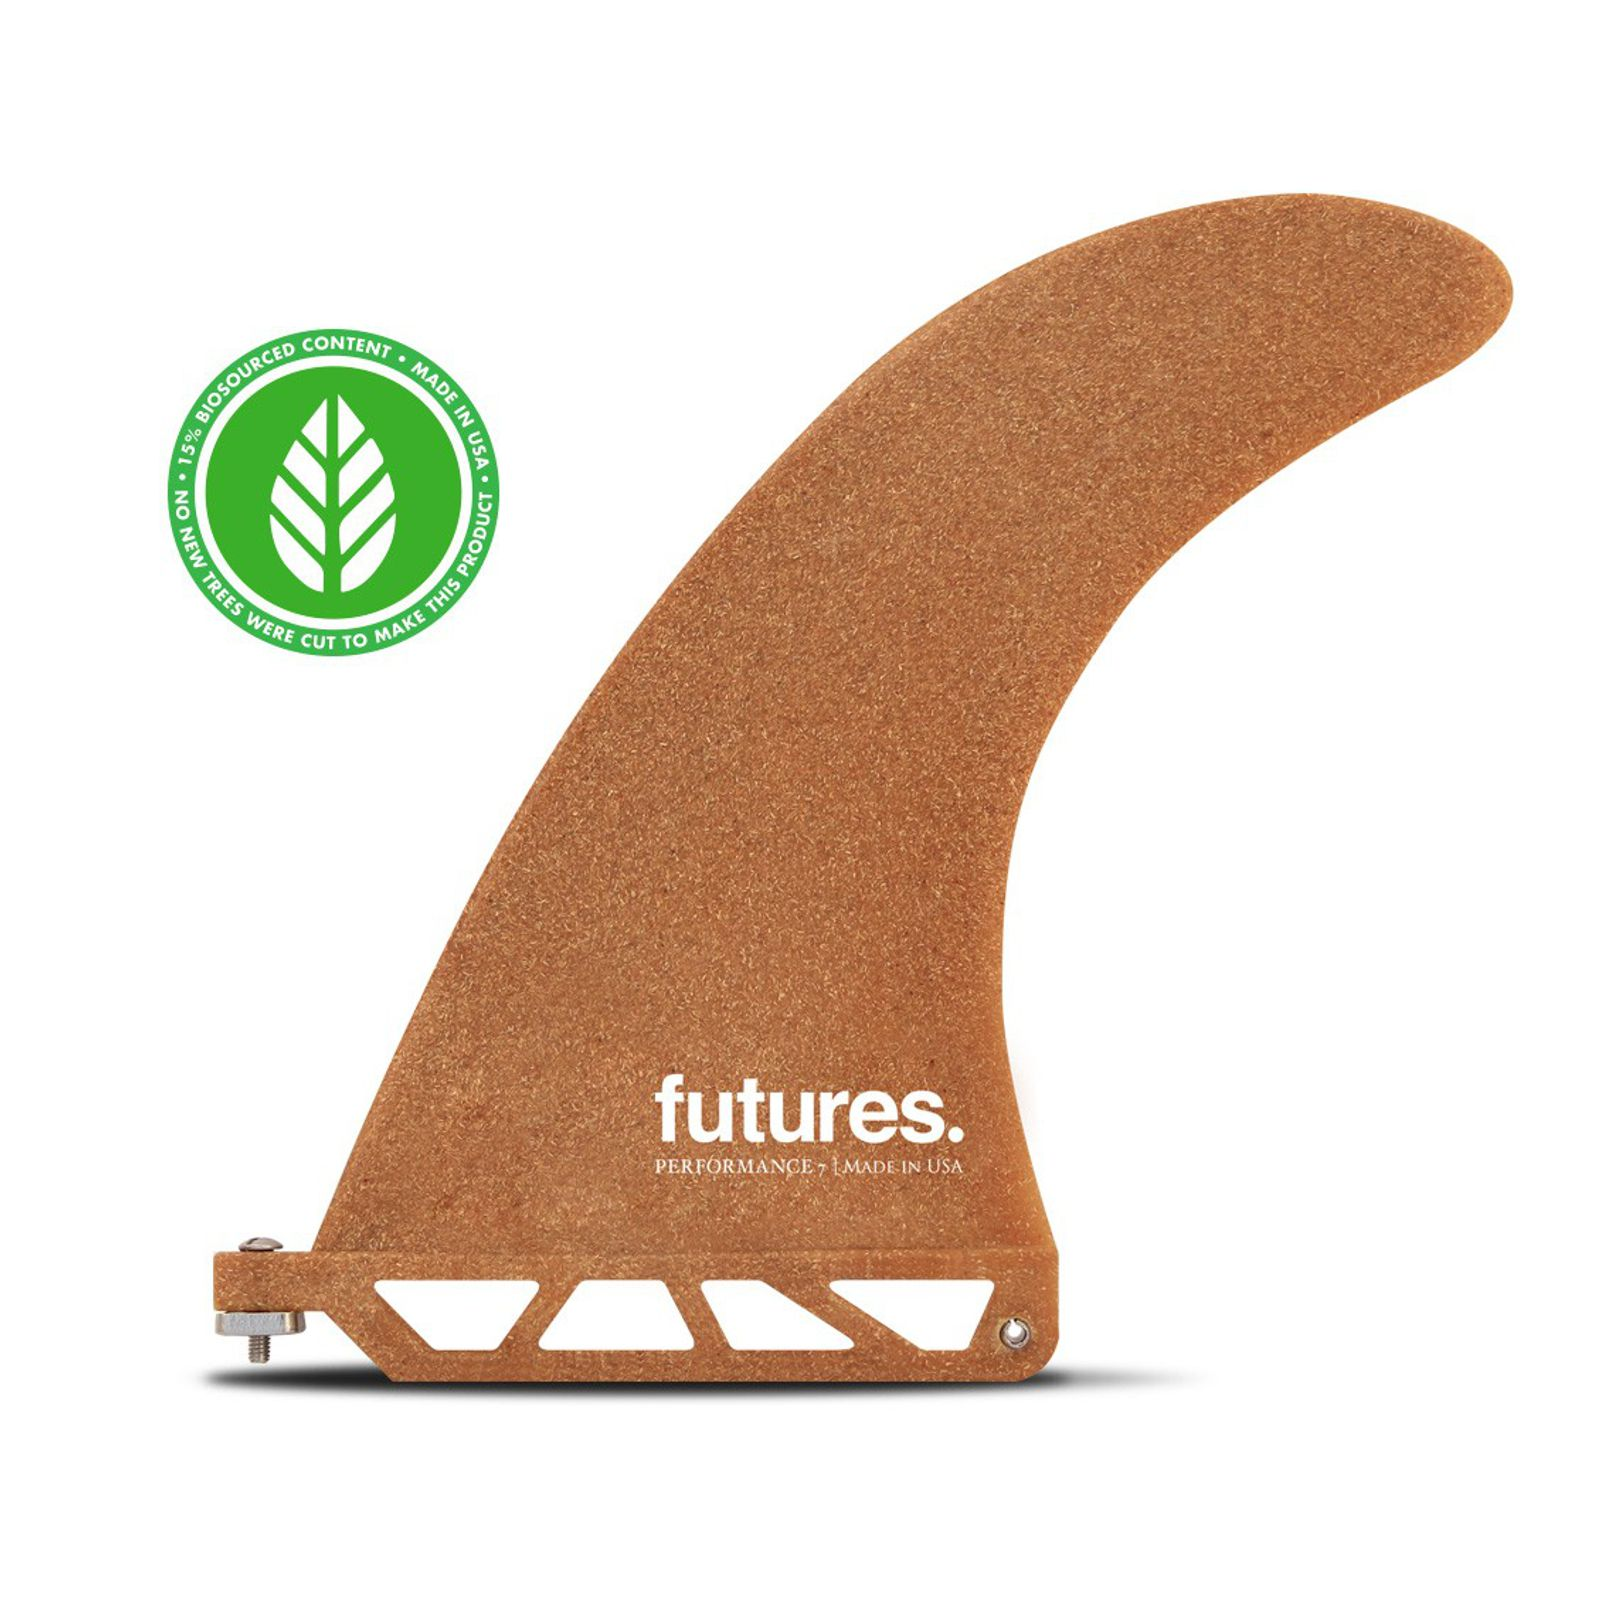 FUTURES Single Fin Performance 7.0 RWC US